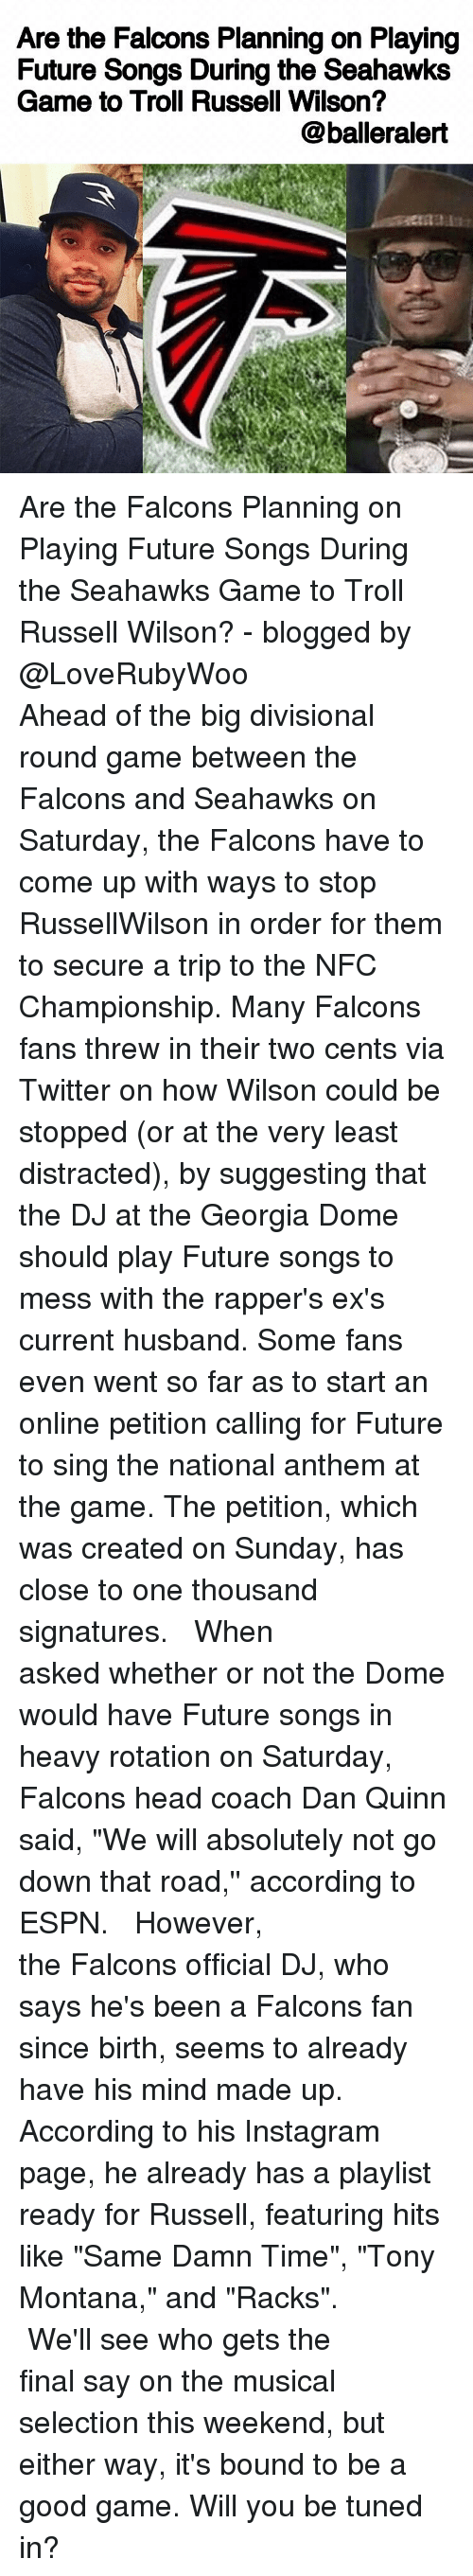 """Espn, Memes, and Russell Wilson: Are the Falcons Planning on Playing  Future Songs During the Seahawks  Game to Troll Russell Wilson?  @balleralert Are the Falcons Planning on Playing Future Songs During the Seahawks Game to Troll Russell Wilson? - blogged by @LoveRubyWoo ⠀⠀⠀⠀⠀⠀⠀⠀⠀ ⠀⠀⠀⠀⠀⠀⠀⠀⠀ Ahead of the big divisional round game between the Falcons and Seahawks on Saturday, the Falcons have to come up with ways to stop RussellWilson in order for them to secure a trip to the NFC Championship. Many Falcons fans threw in their two cents via Twitter on how Wilson could be stopped (or at the very least distracted), by suggesting that the DJ at the Georgia Dome should play Future songs to mess with the rapper's ex's current husband. Some fans even went so far as to start an online petition calling for Future to sing the national anthem at the game. The petition, which was created on Sunday, has close to one thousand signatures. ⠀⠀⠀⠀⠀⠀⠀⠀⠀ ⠀⠀⠀⠀⠀⠀⠀⠀⠀ When asked whether or not the Dome would have Future songs in heavy rotation on Saturday, Falcons head coach Dan Quinn said, """"We will absolutely not go down that road,'' according to ESPN. ⠀⠀⠀⠀⠀⠀⠀⠀⠀ ⠀⠀⠀⠀⠀⠀⠀⠀⠀ However, the Falcons official DJ, who says he's been a Falcons fan since birth, seems to already have his mind made up. According to his Instagram page, he already has a playlist ready for Russell, featuring hits like """"Same Damn Time"""", """"Tony Montana,"""" and """"Racks"""". ⠀⠀⠀⠀⠀⠀⠀⠀⠀ ⠀⠀⠀⠀⠀⠀⠀⠀⠀ We'll see who gets the final say on the musical selection this weekend, but either way, it's bound to be a good game. Will you be tuned in?"""